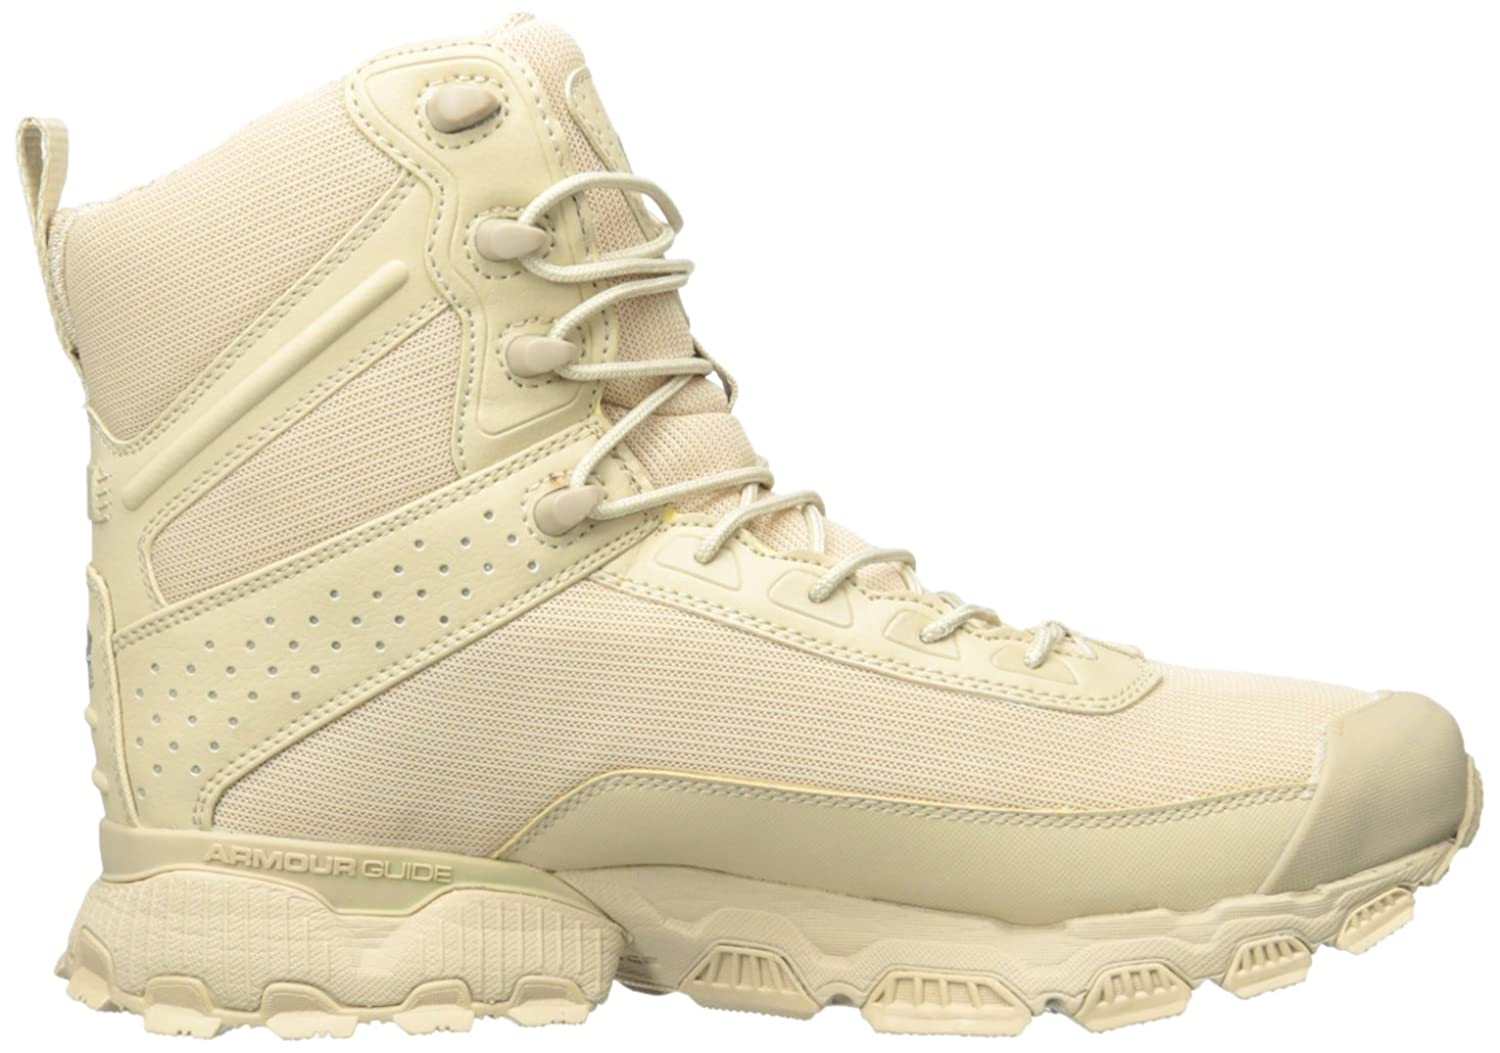 Tactical Stiefel Valsetz - Botas Unisex adulto, color beige, talla 47.5 EU Under Armour